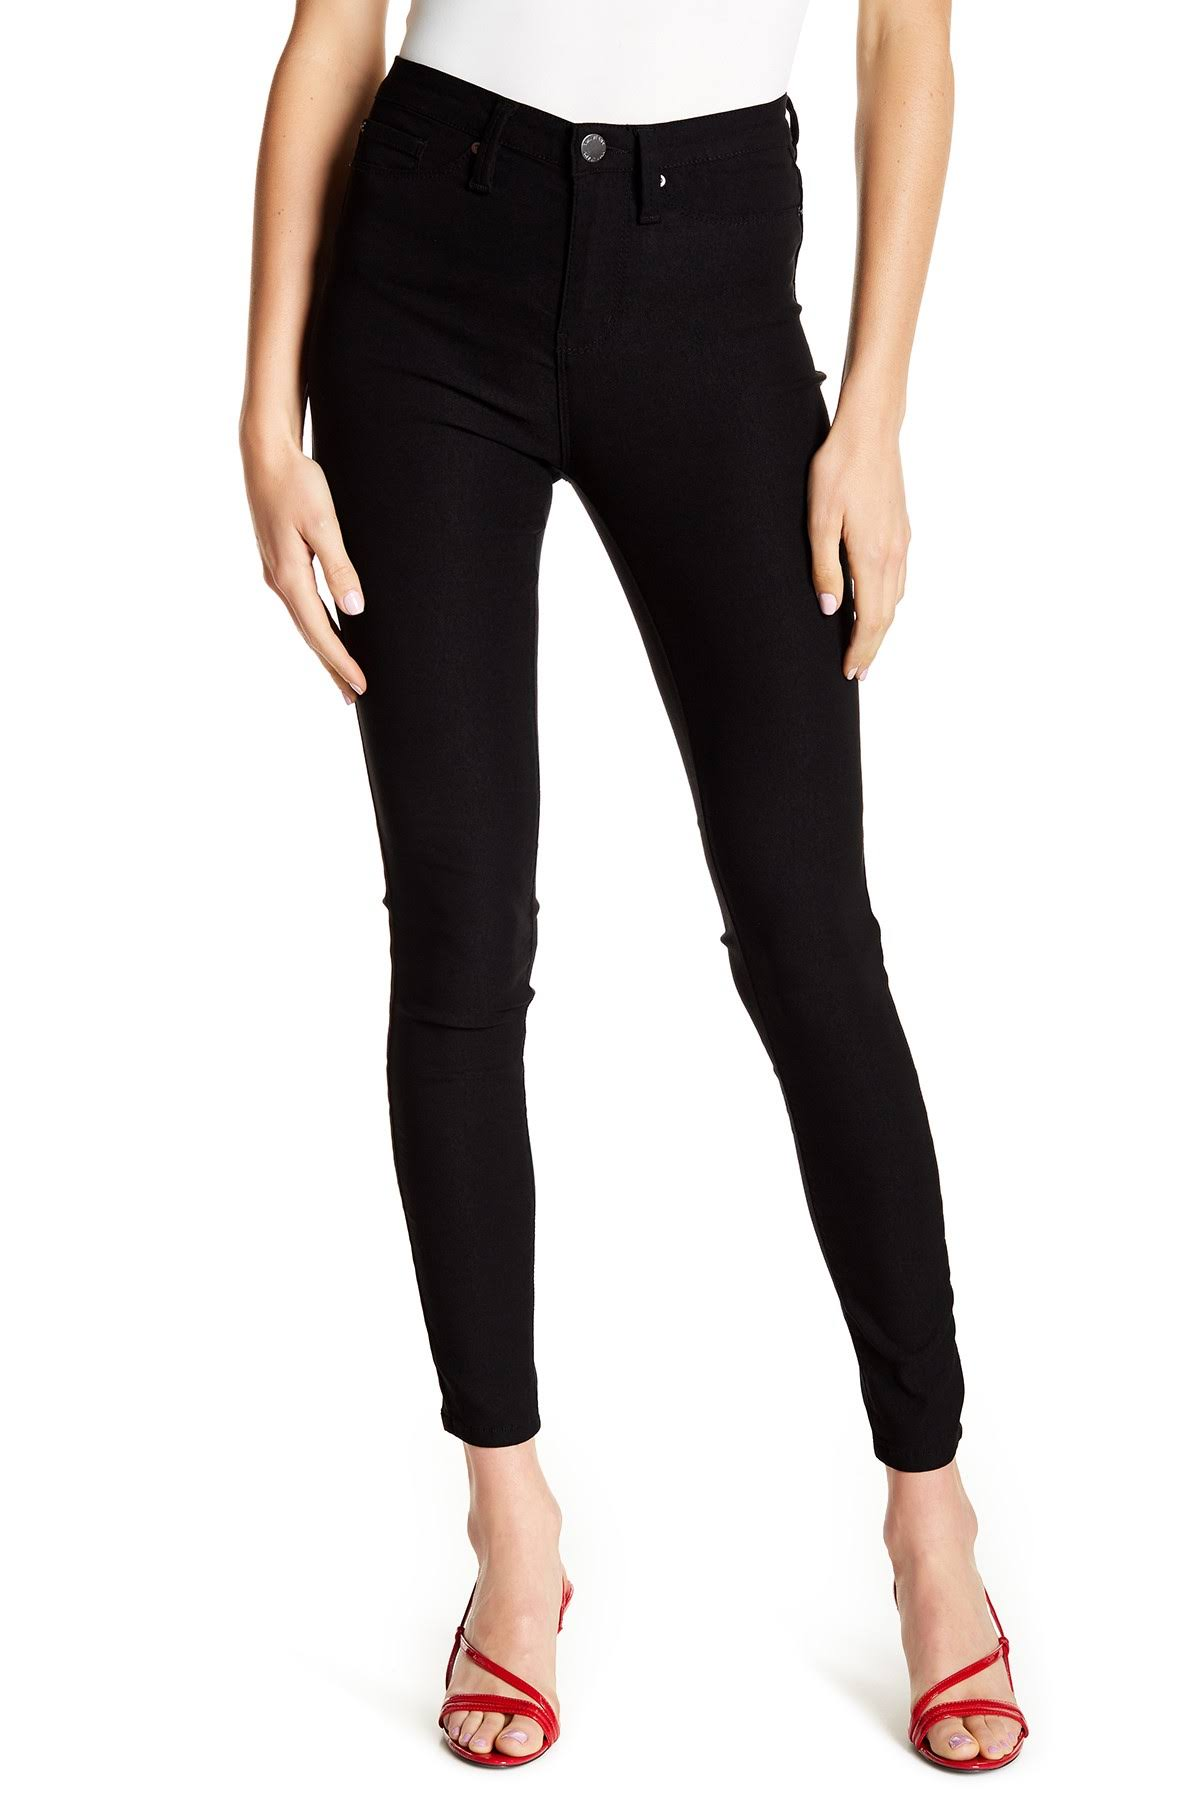 YMI Women's Hide Your Muffin Top Hyperstretch Skinny Jeans Black